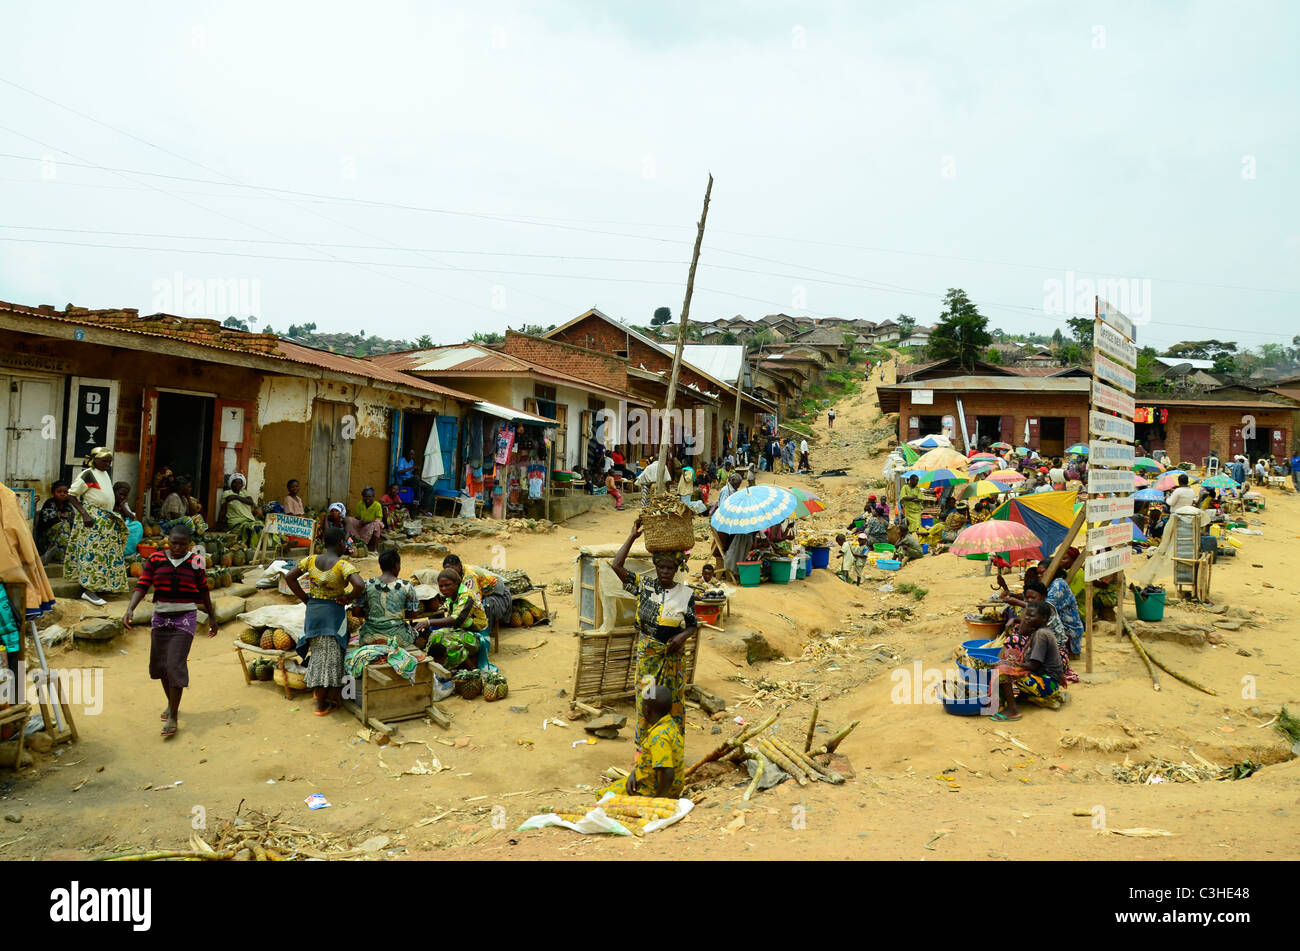 Village scene in Eastern border town of Democratic Republic of Congo in January 2011. - Stock Image